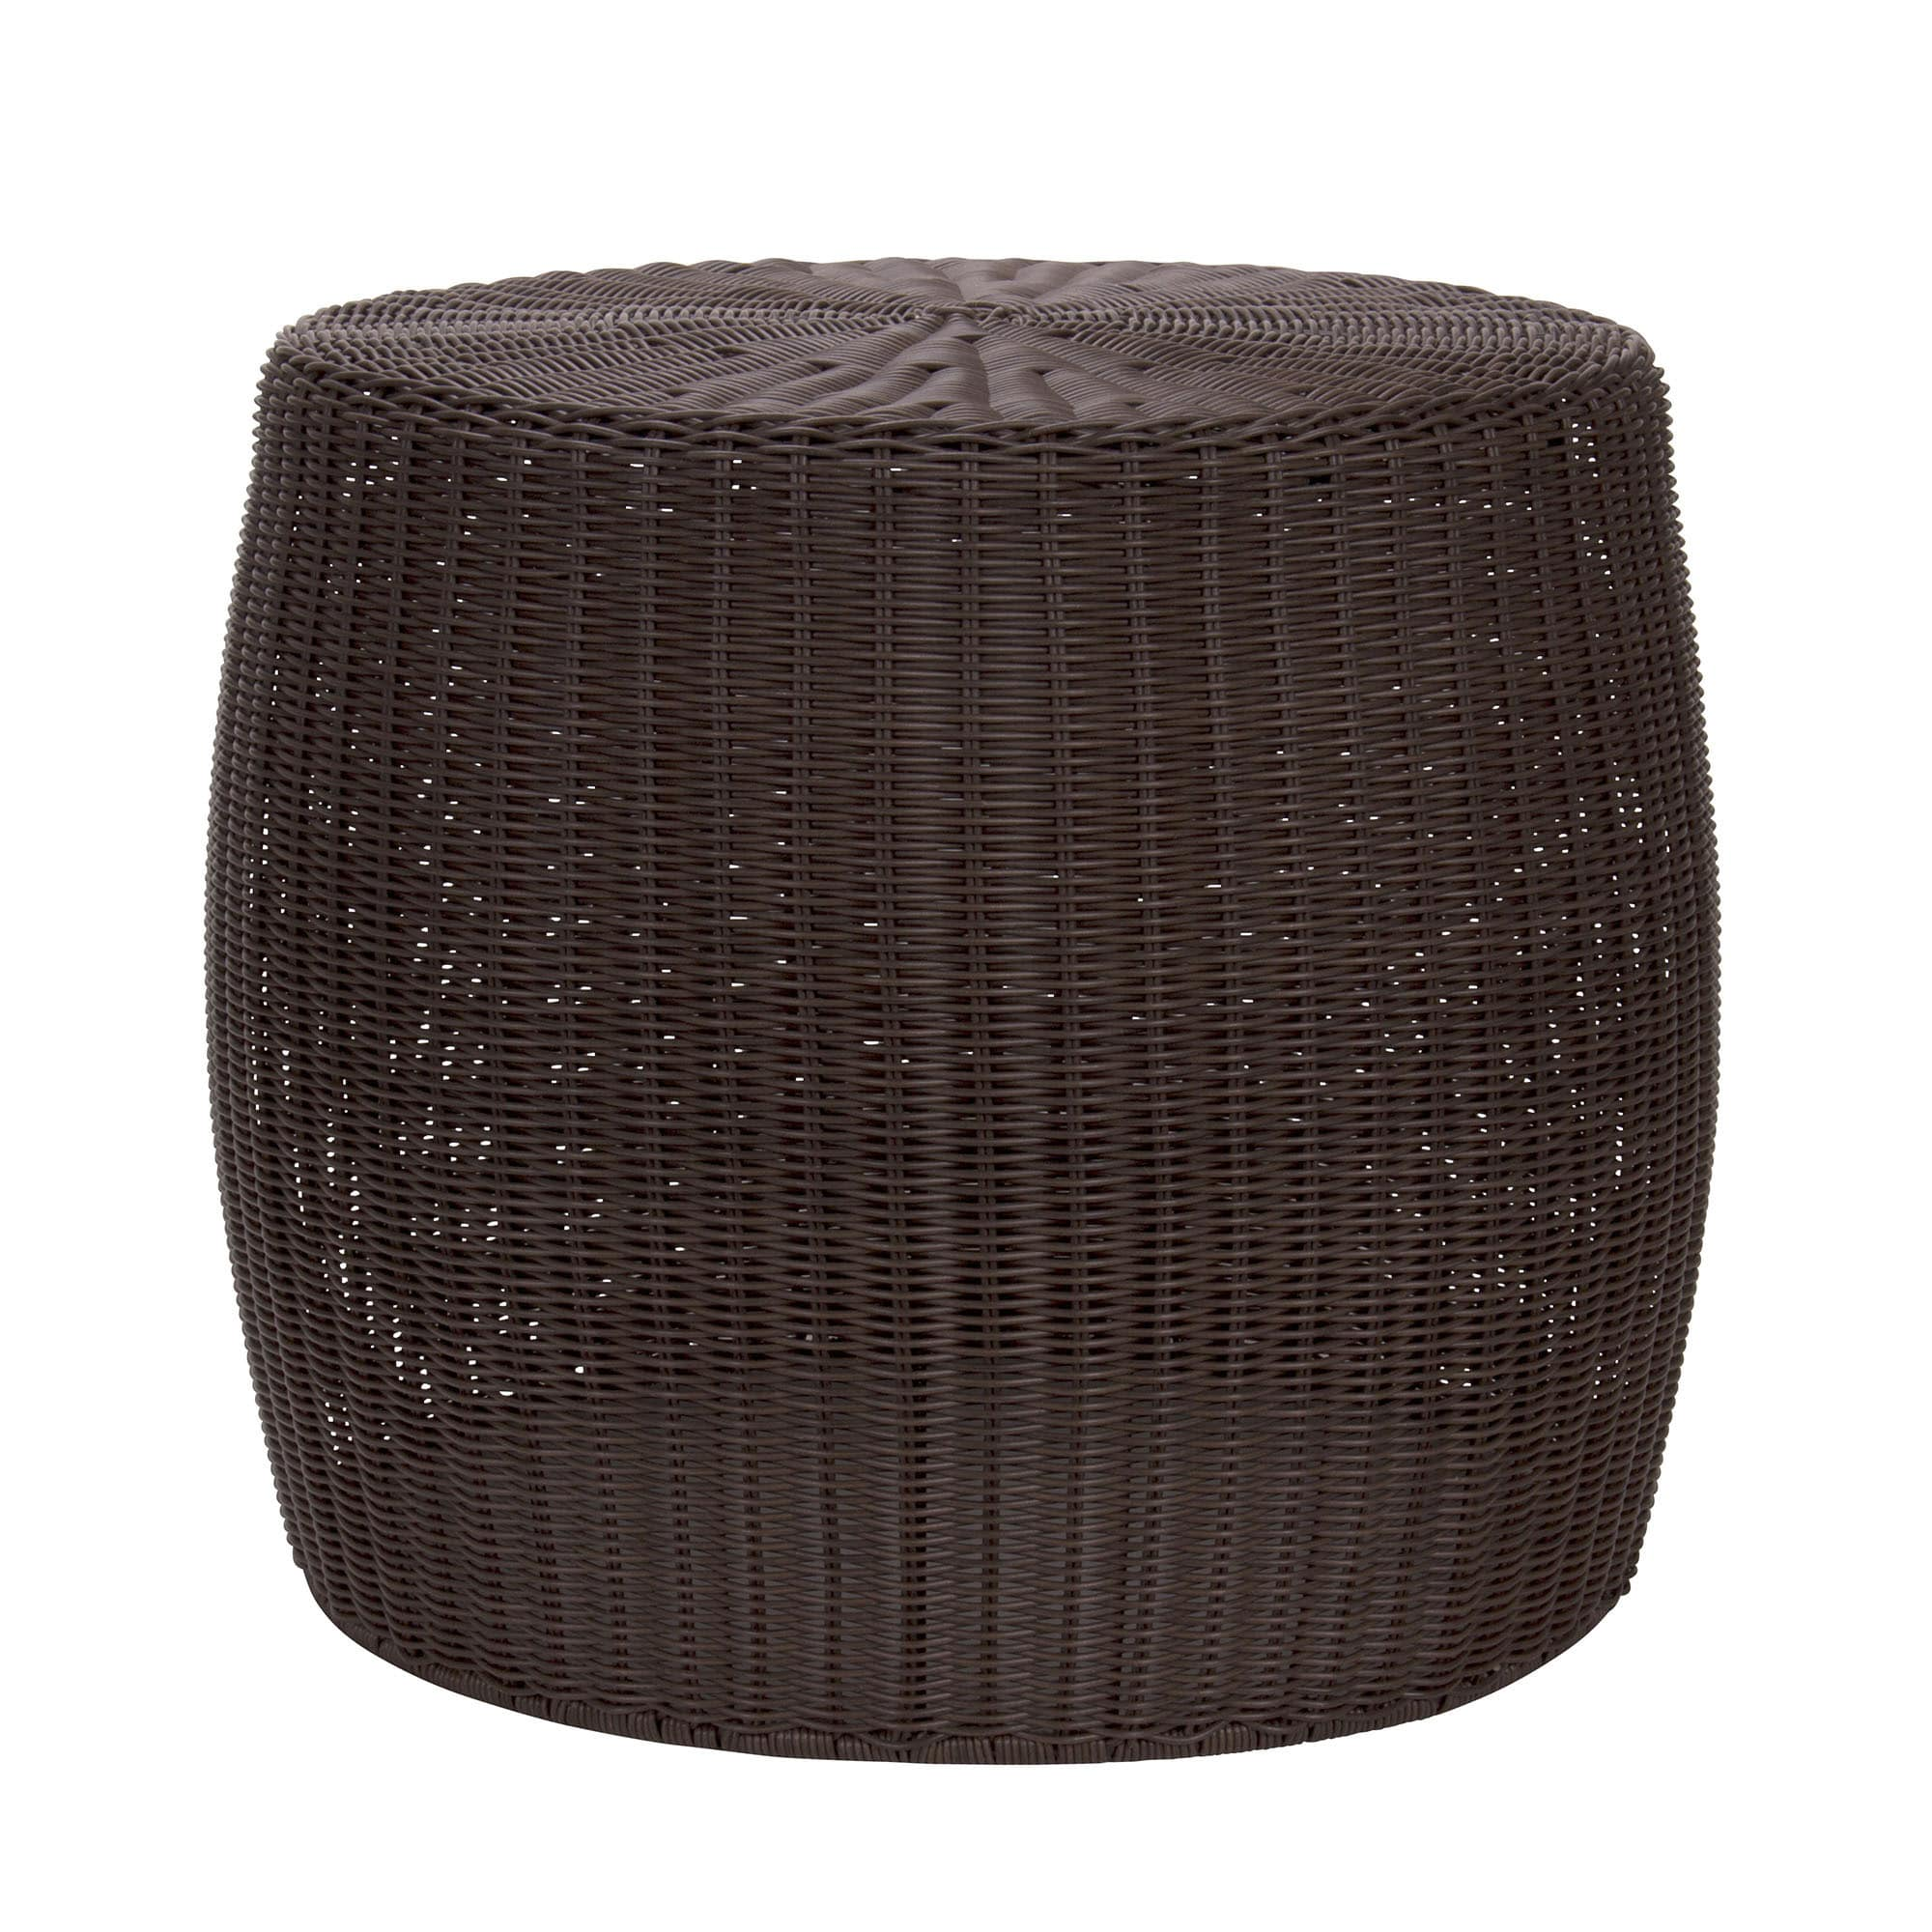 the curated nomad tipton brown resin wicker side table free household essentials outdoor shipping today large round dining teak furniture vancouver oak nightstand small lamps very